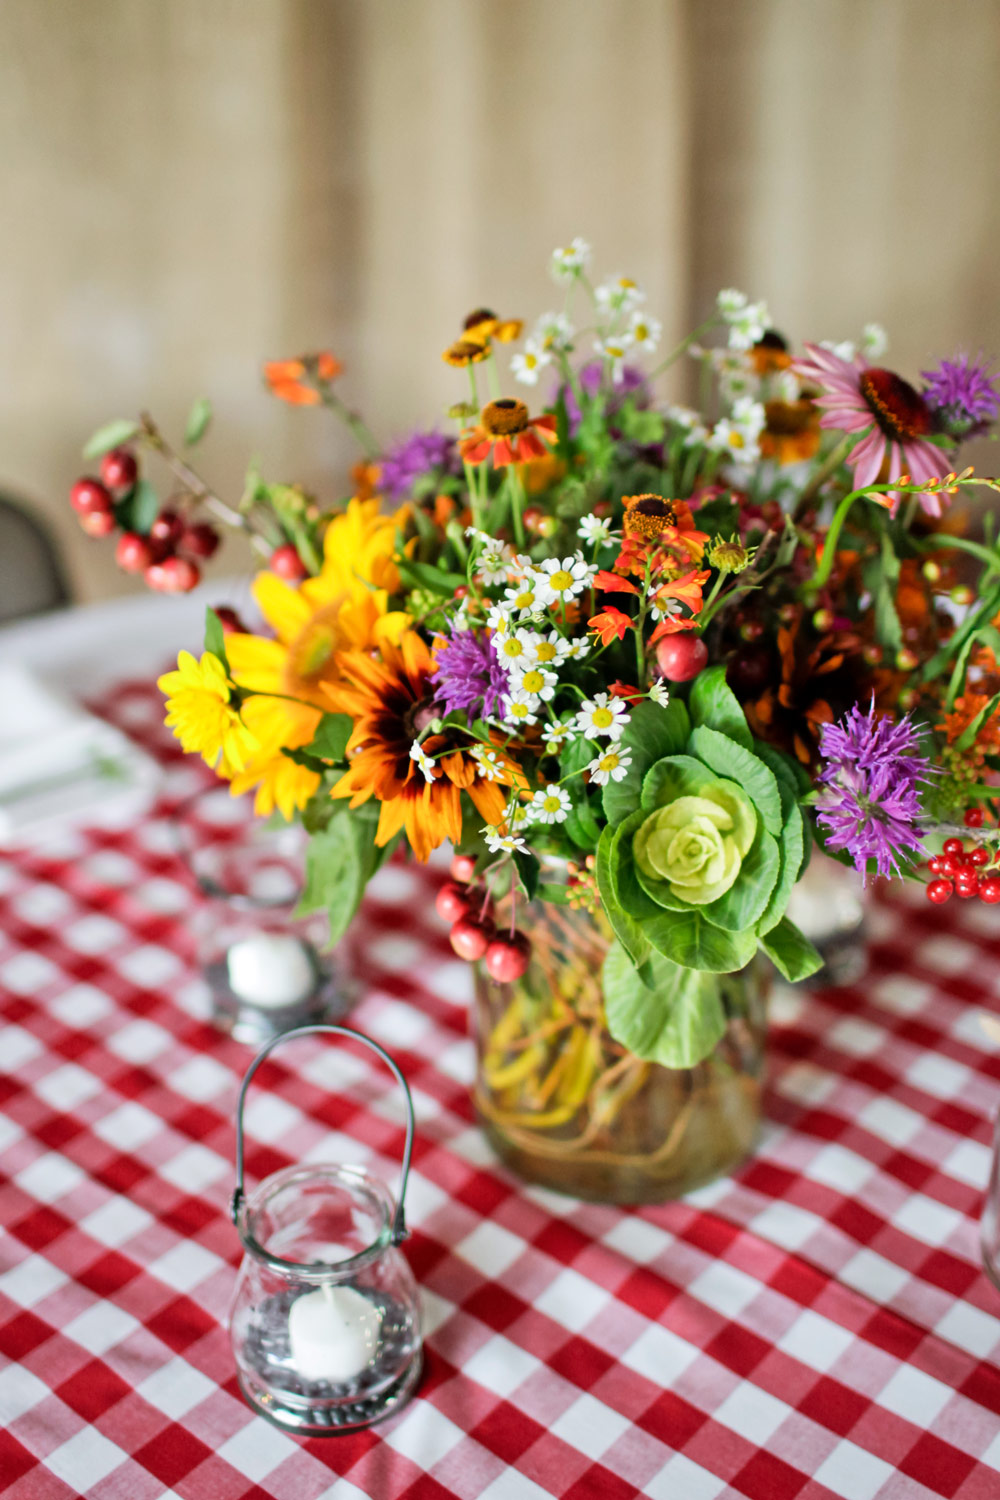 event-photographer-madison-wi-dane-county-gala-fundraiser-ruthie-hauge-photography-farm-to-table 07.jpg